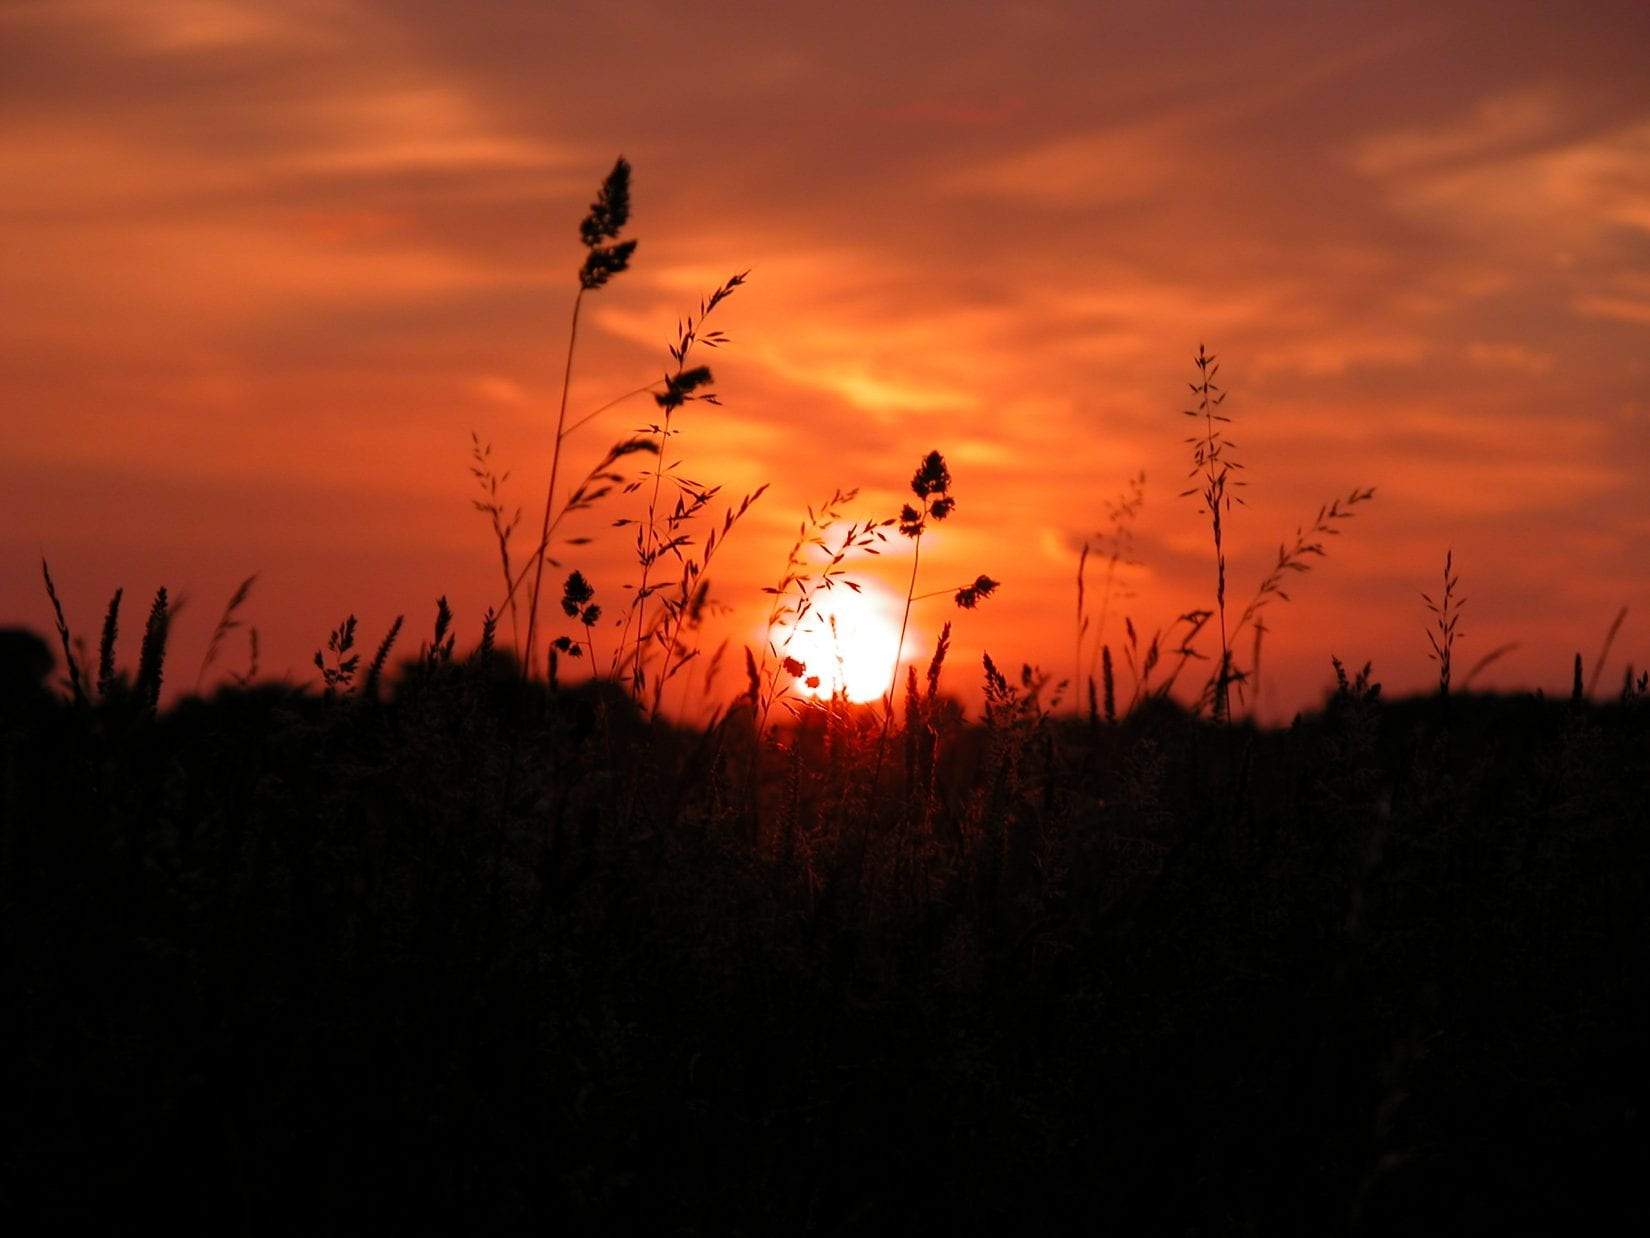 sunset-at-dusk-with-grasses-silhoutted-against-red-sky